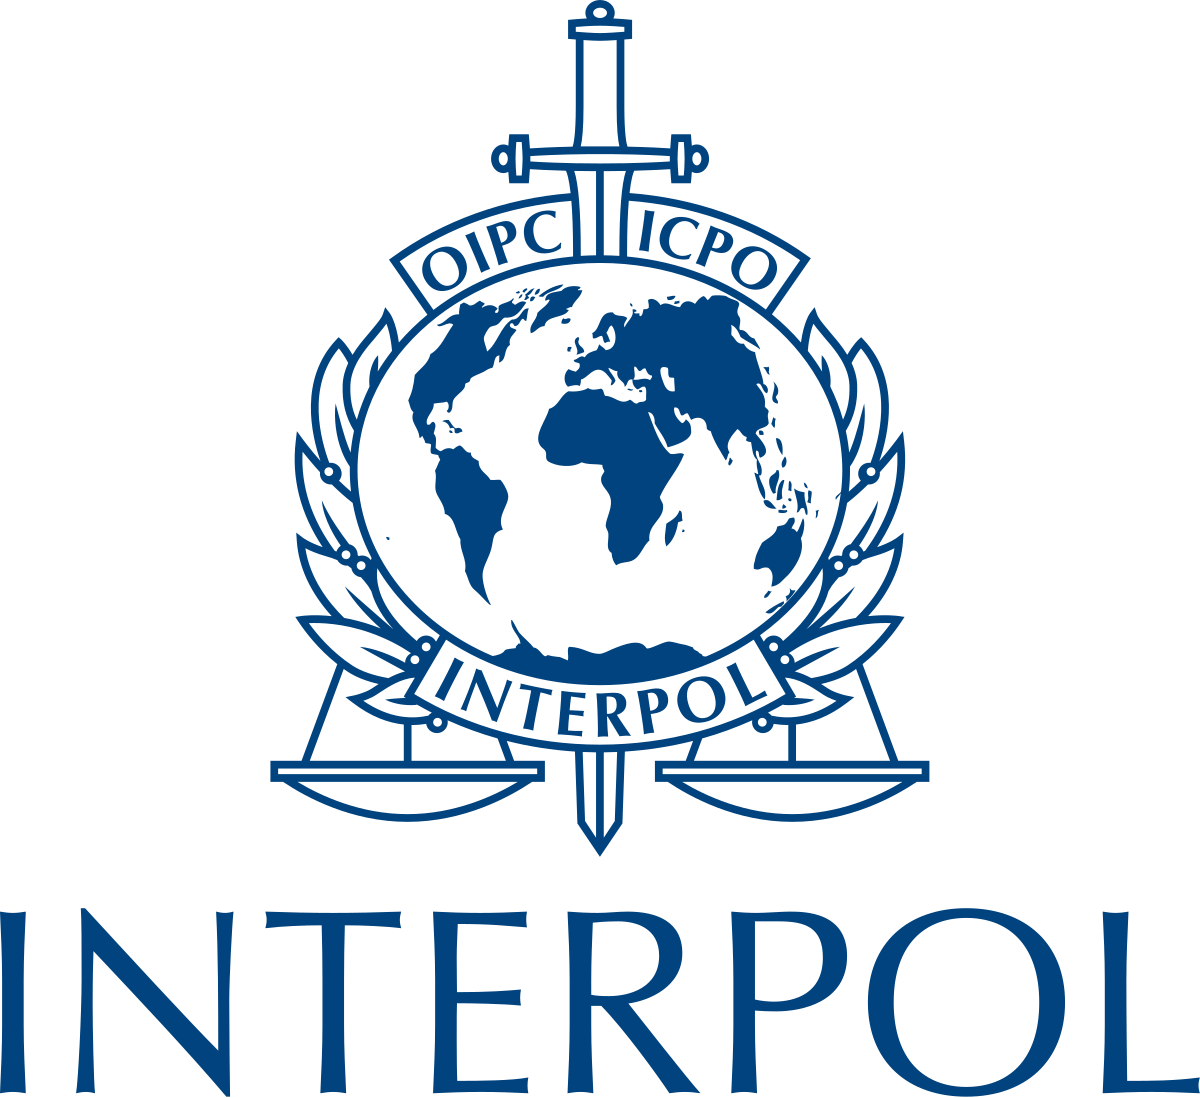 Libya – Agreement to operationalize Interpol system to apprehend those on Red Notice